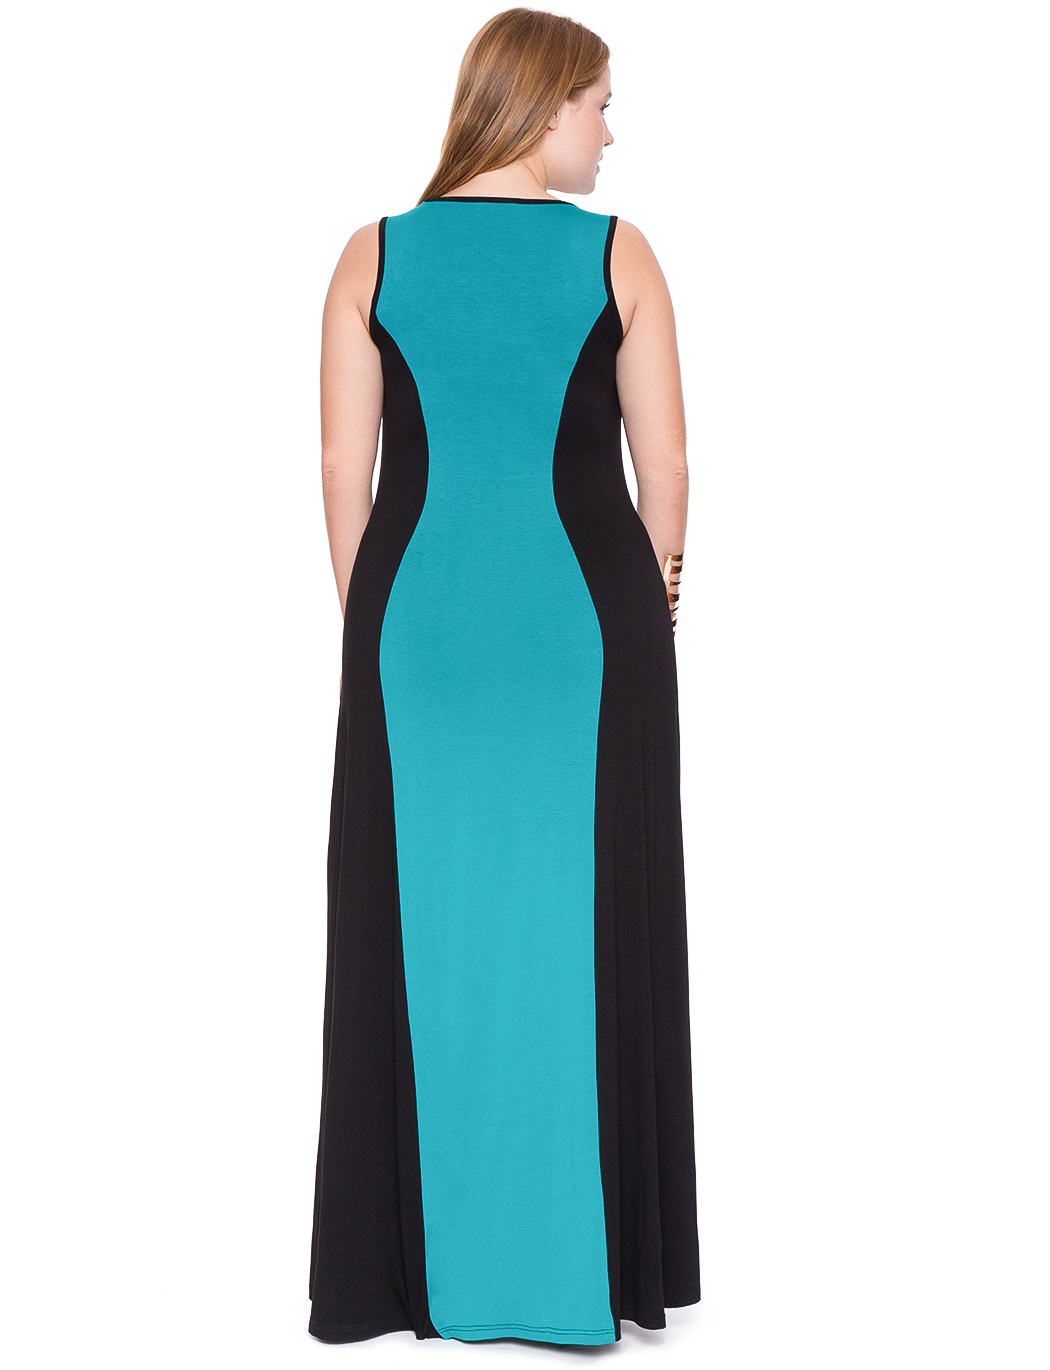 Colorblock Maxi Dress | Women\'s Plus Size Dresses | ELOQUII